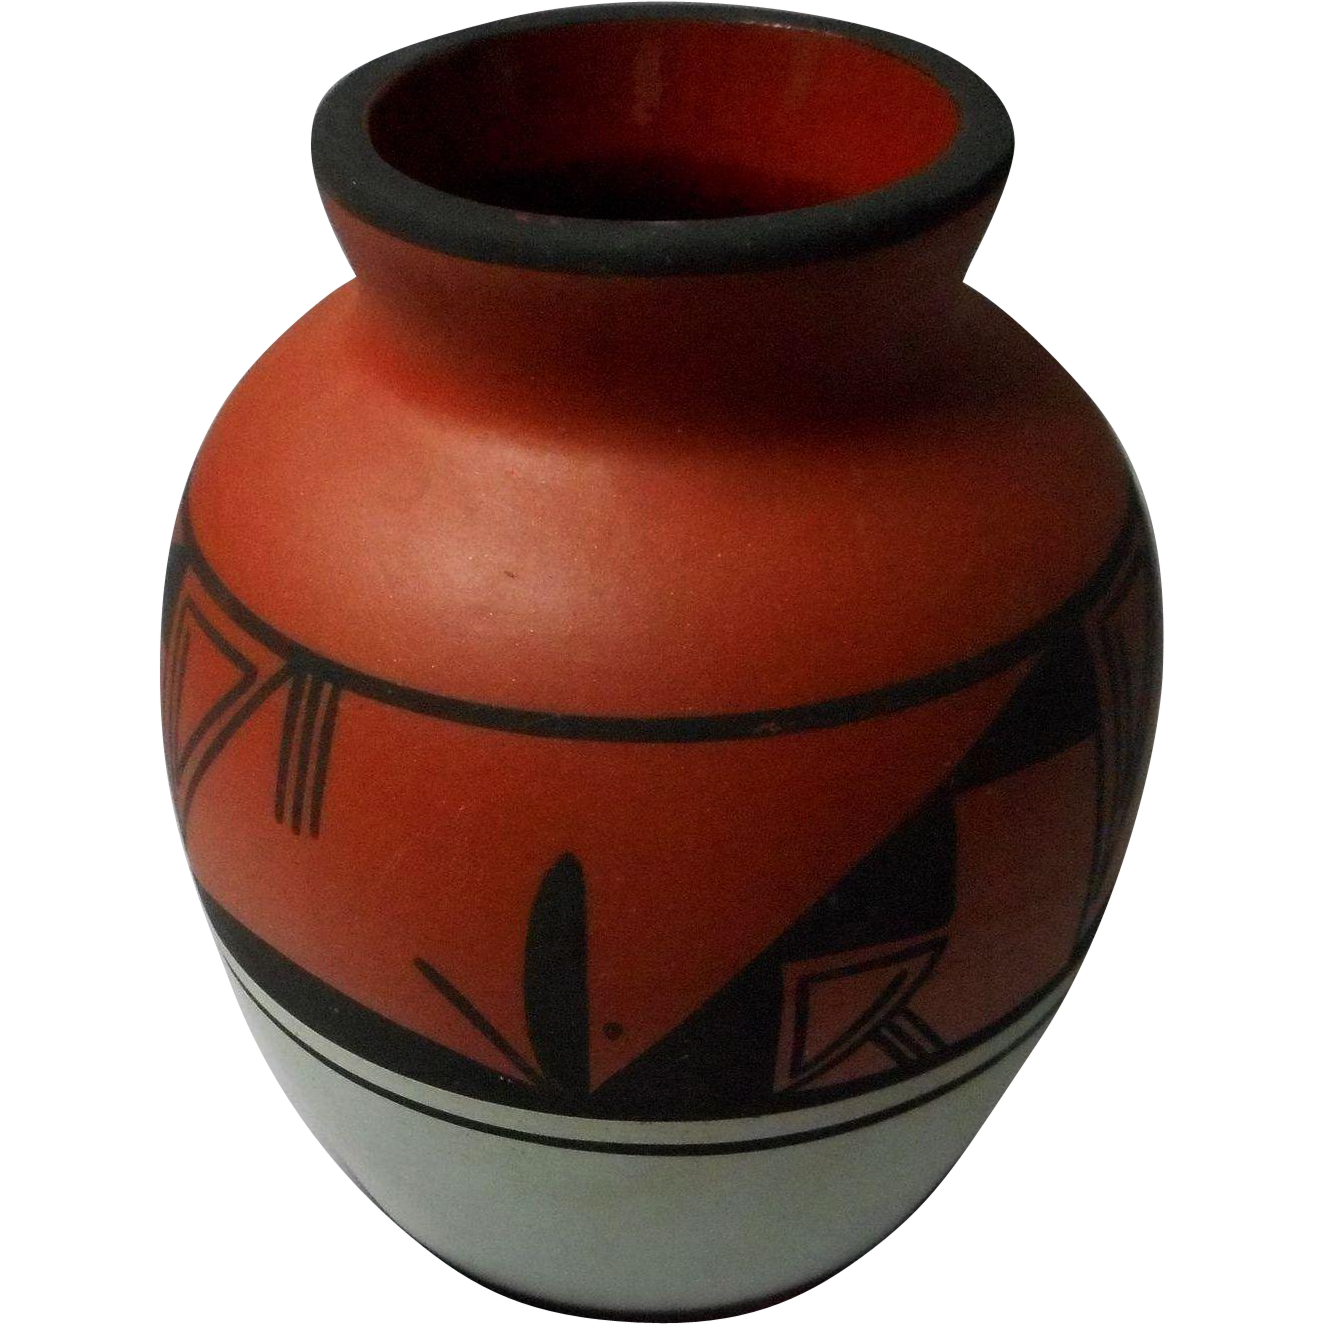 Signed Native American Pottery Vase From Eleanorslegacy On